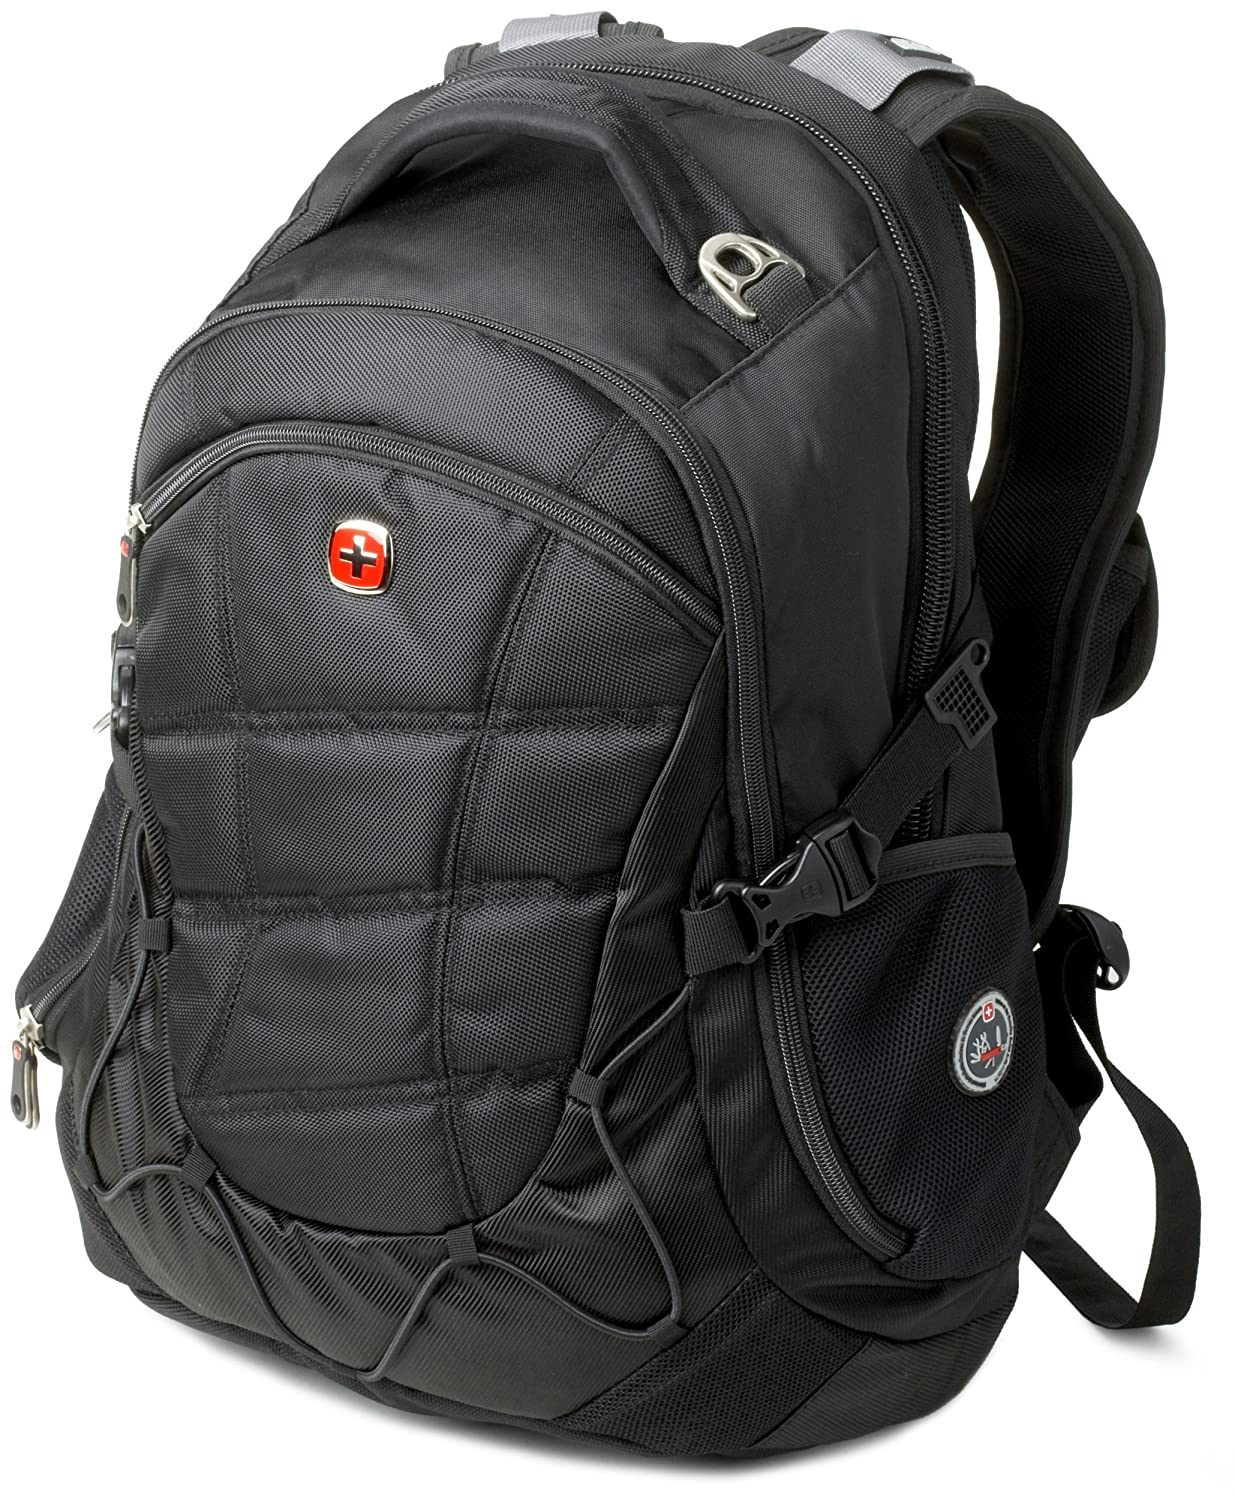 Save up to 50% on Select SwissGear Computer Backpacks and Bags